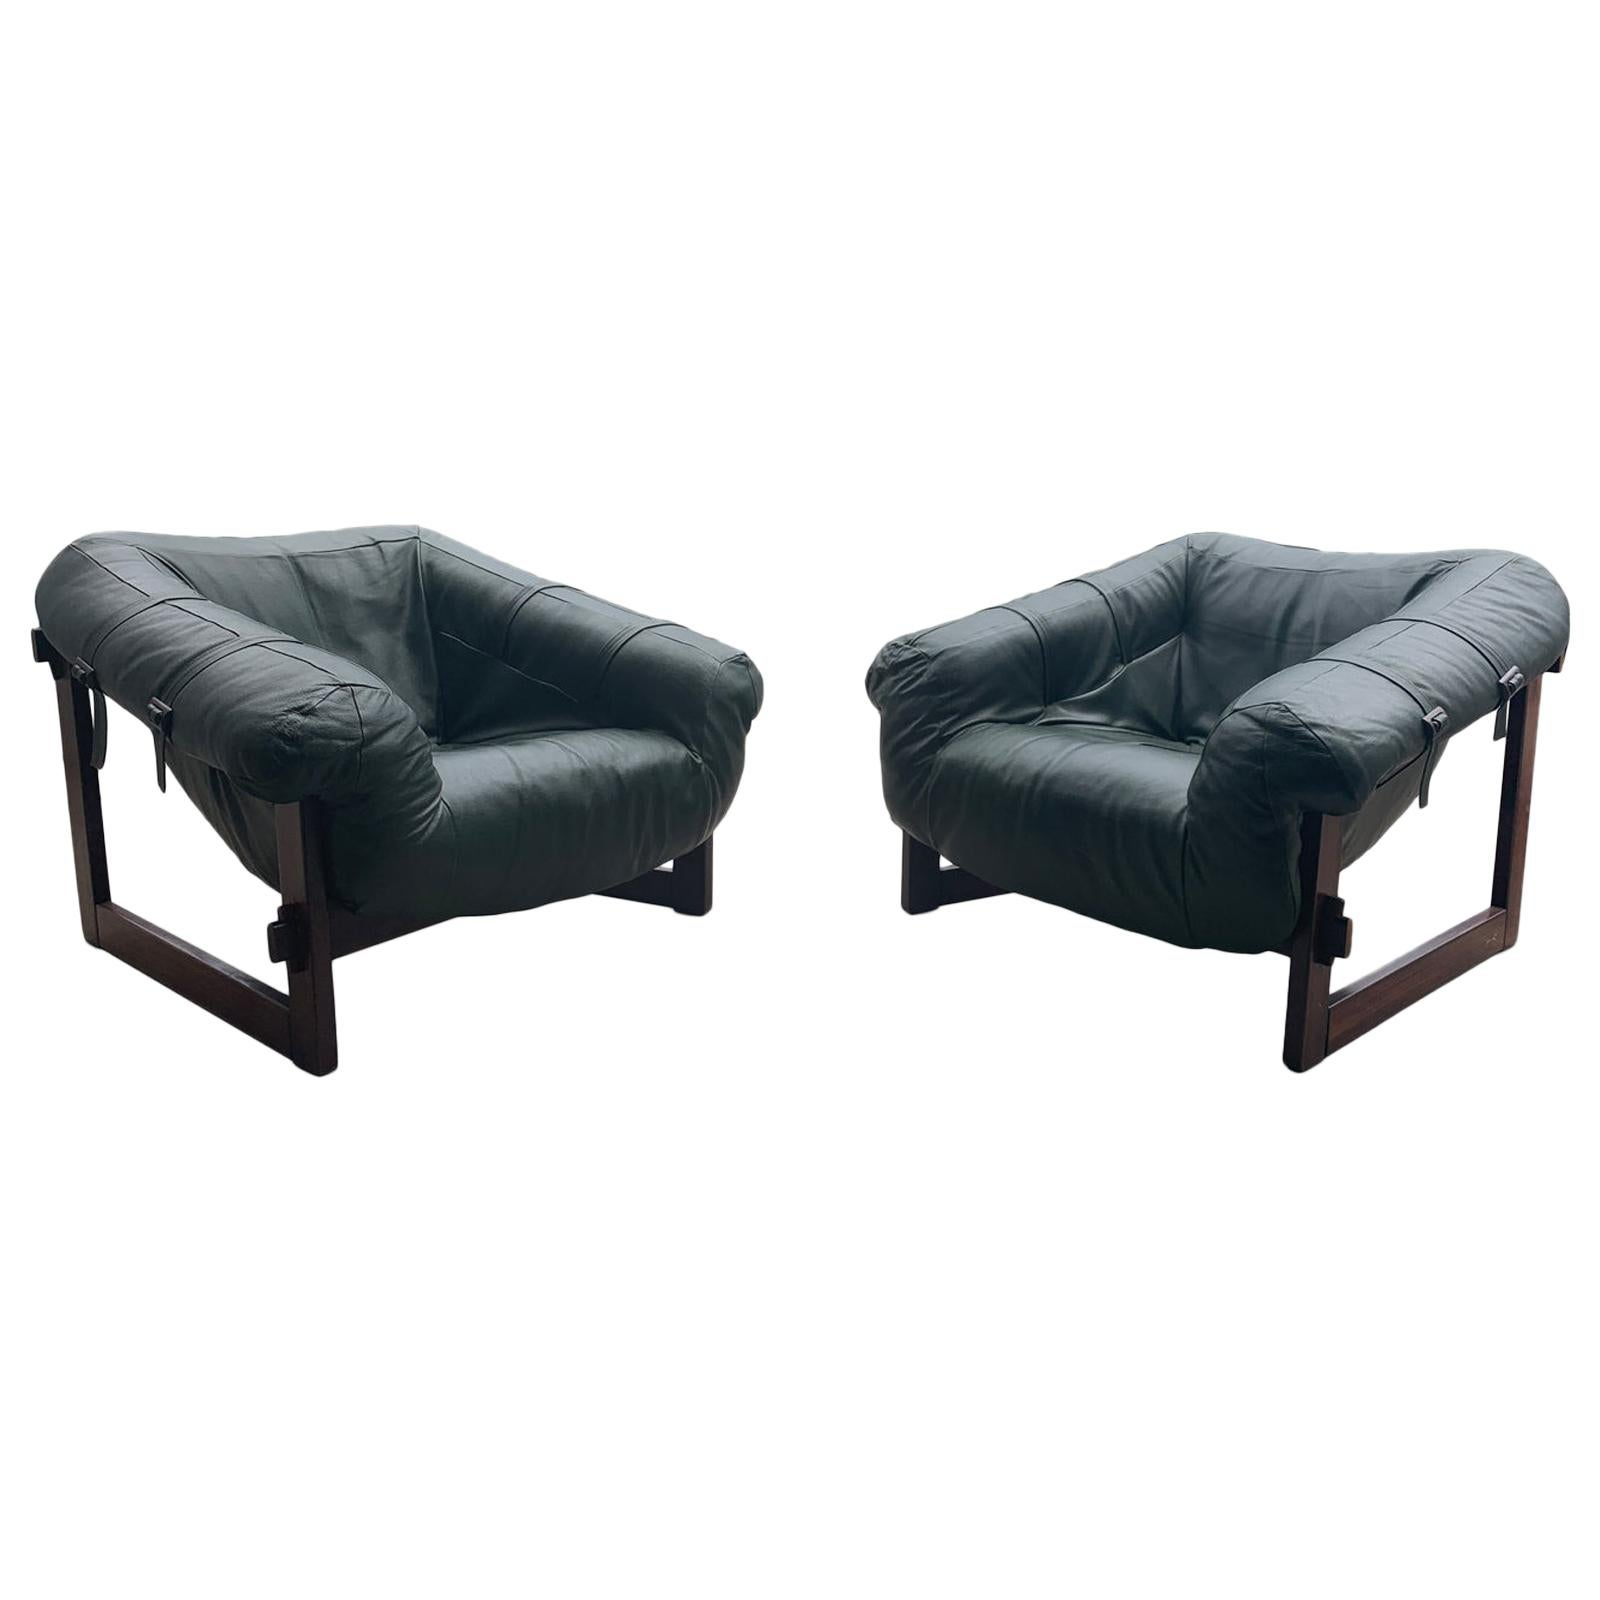 Sofa Jequitiba Nova America Brazil Lounge Chairs 292 For Sale At 1stdibs